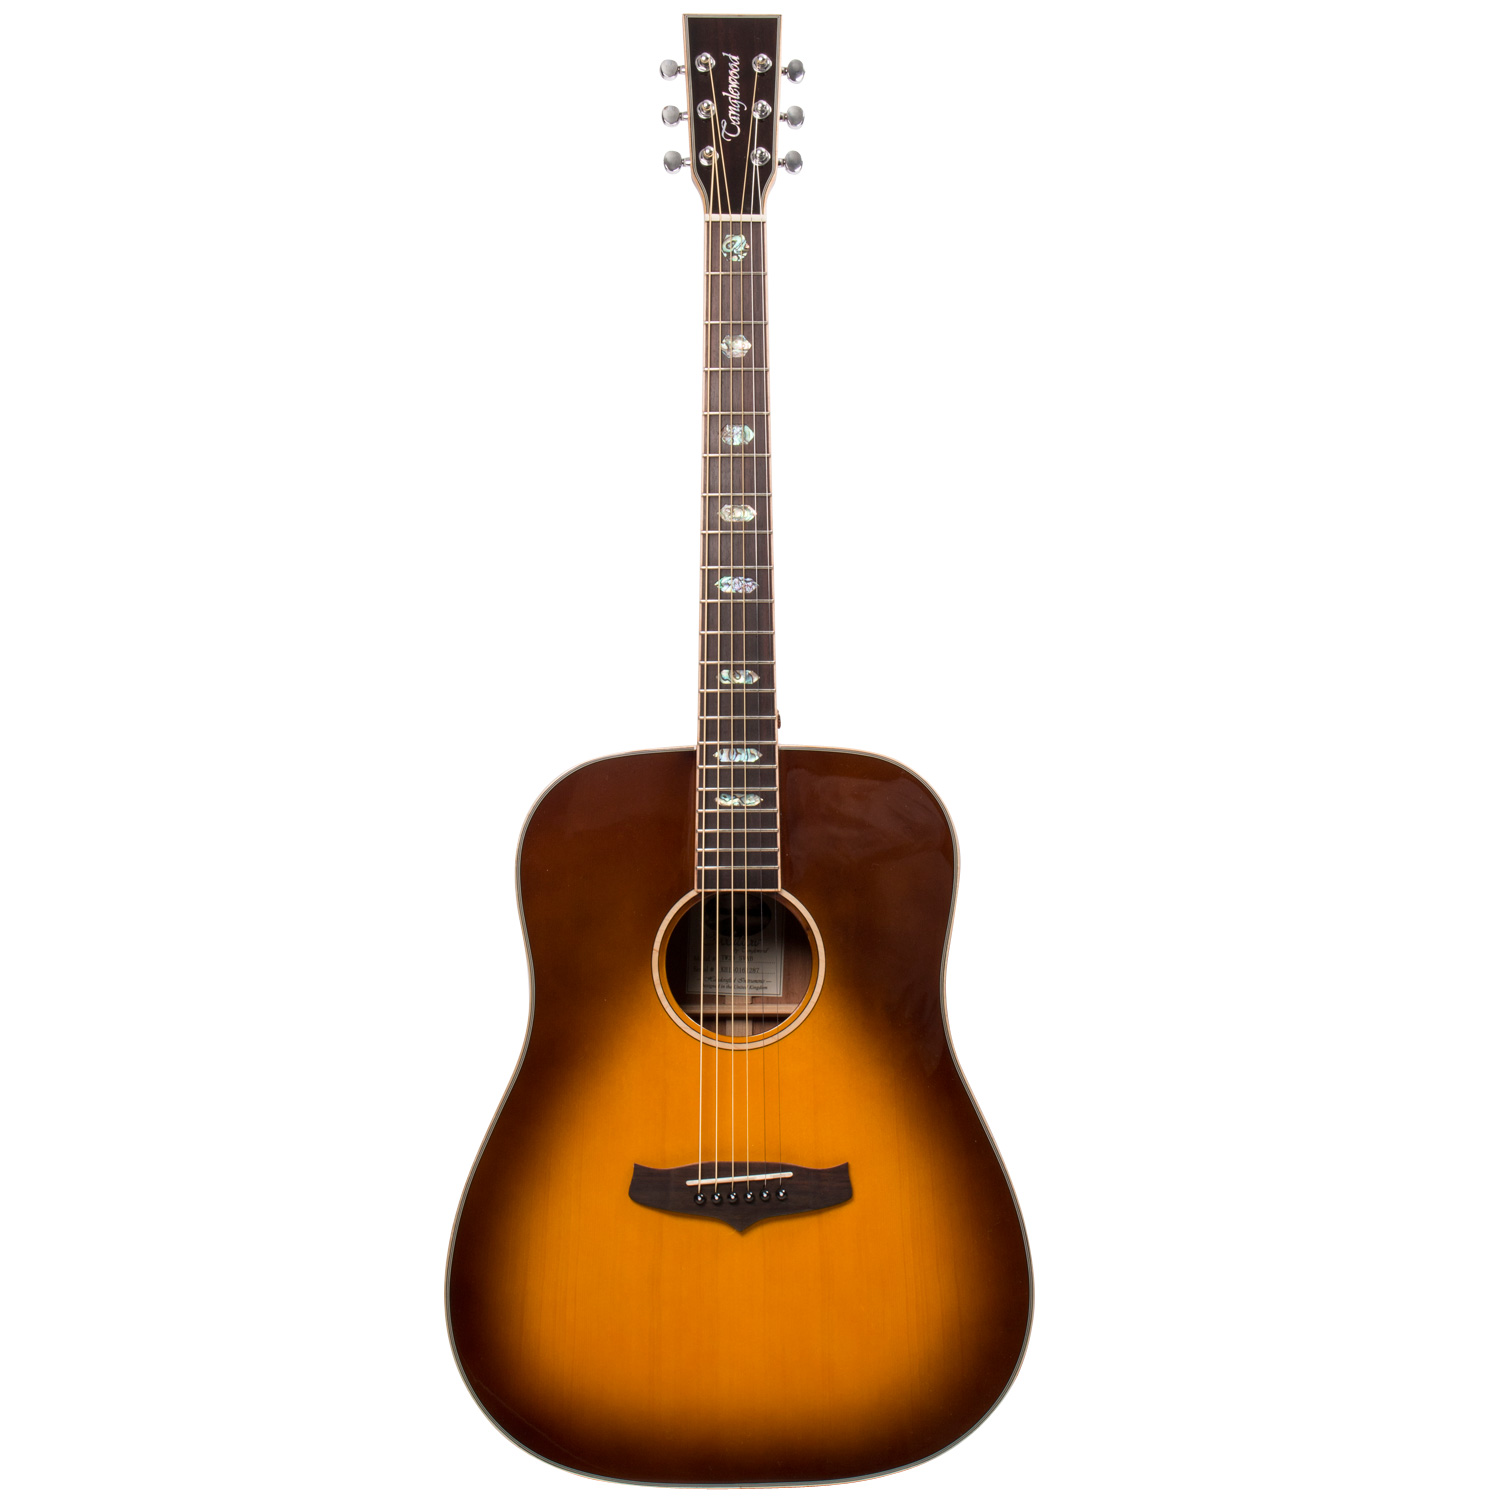 Tanglewood tw28 st svab westerngitarre kaufen bax shop for The tanglewood